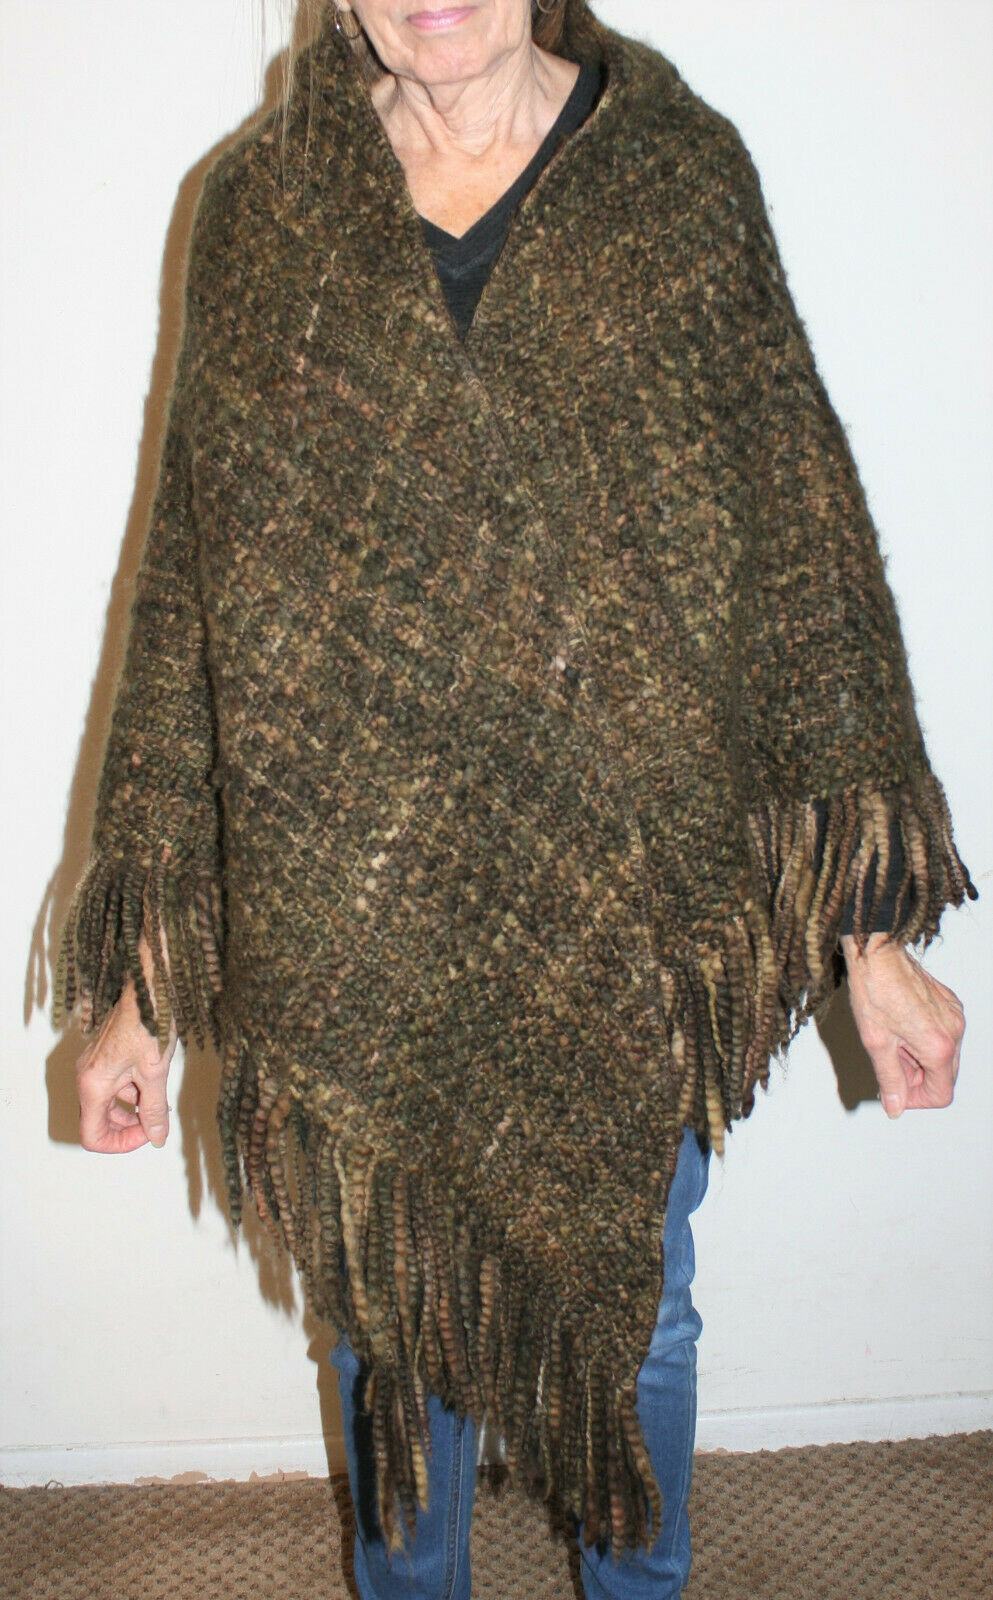 Peruvian Connection Woven Wool Shawl Wrap OS S M L XL Olive Green Brown Fringe